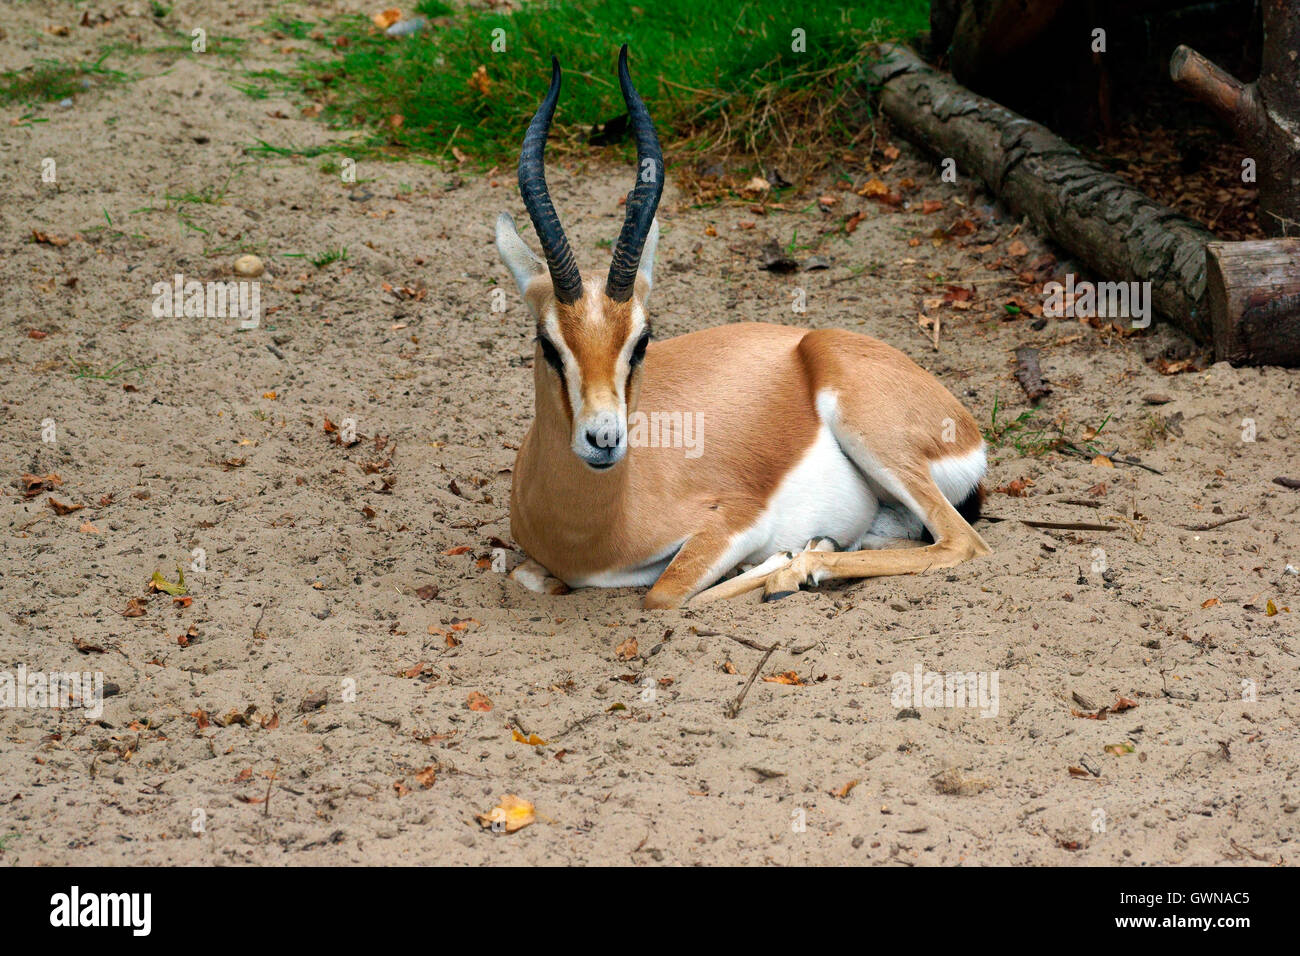 DORCAS GAZELLE RESTING Stock Photo